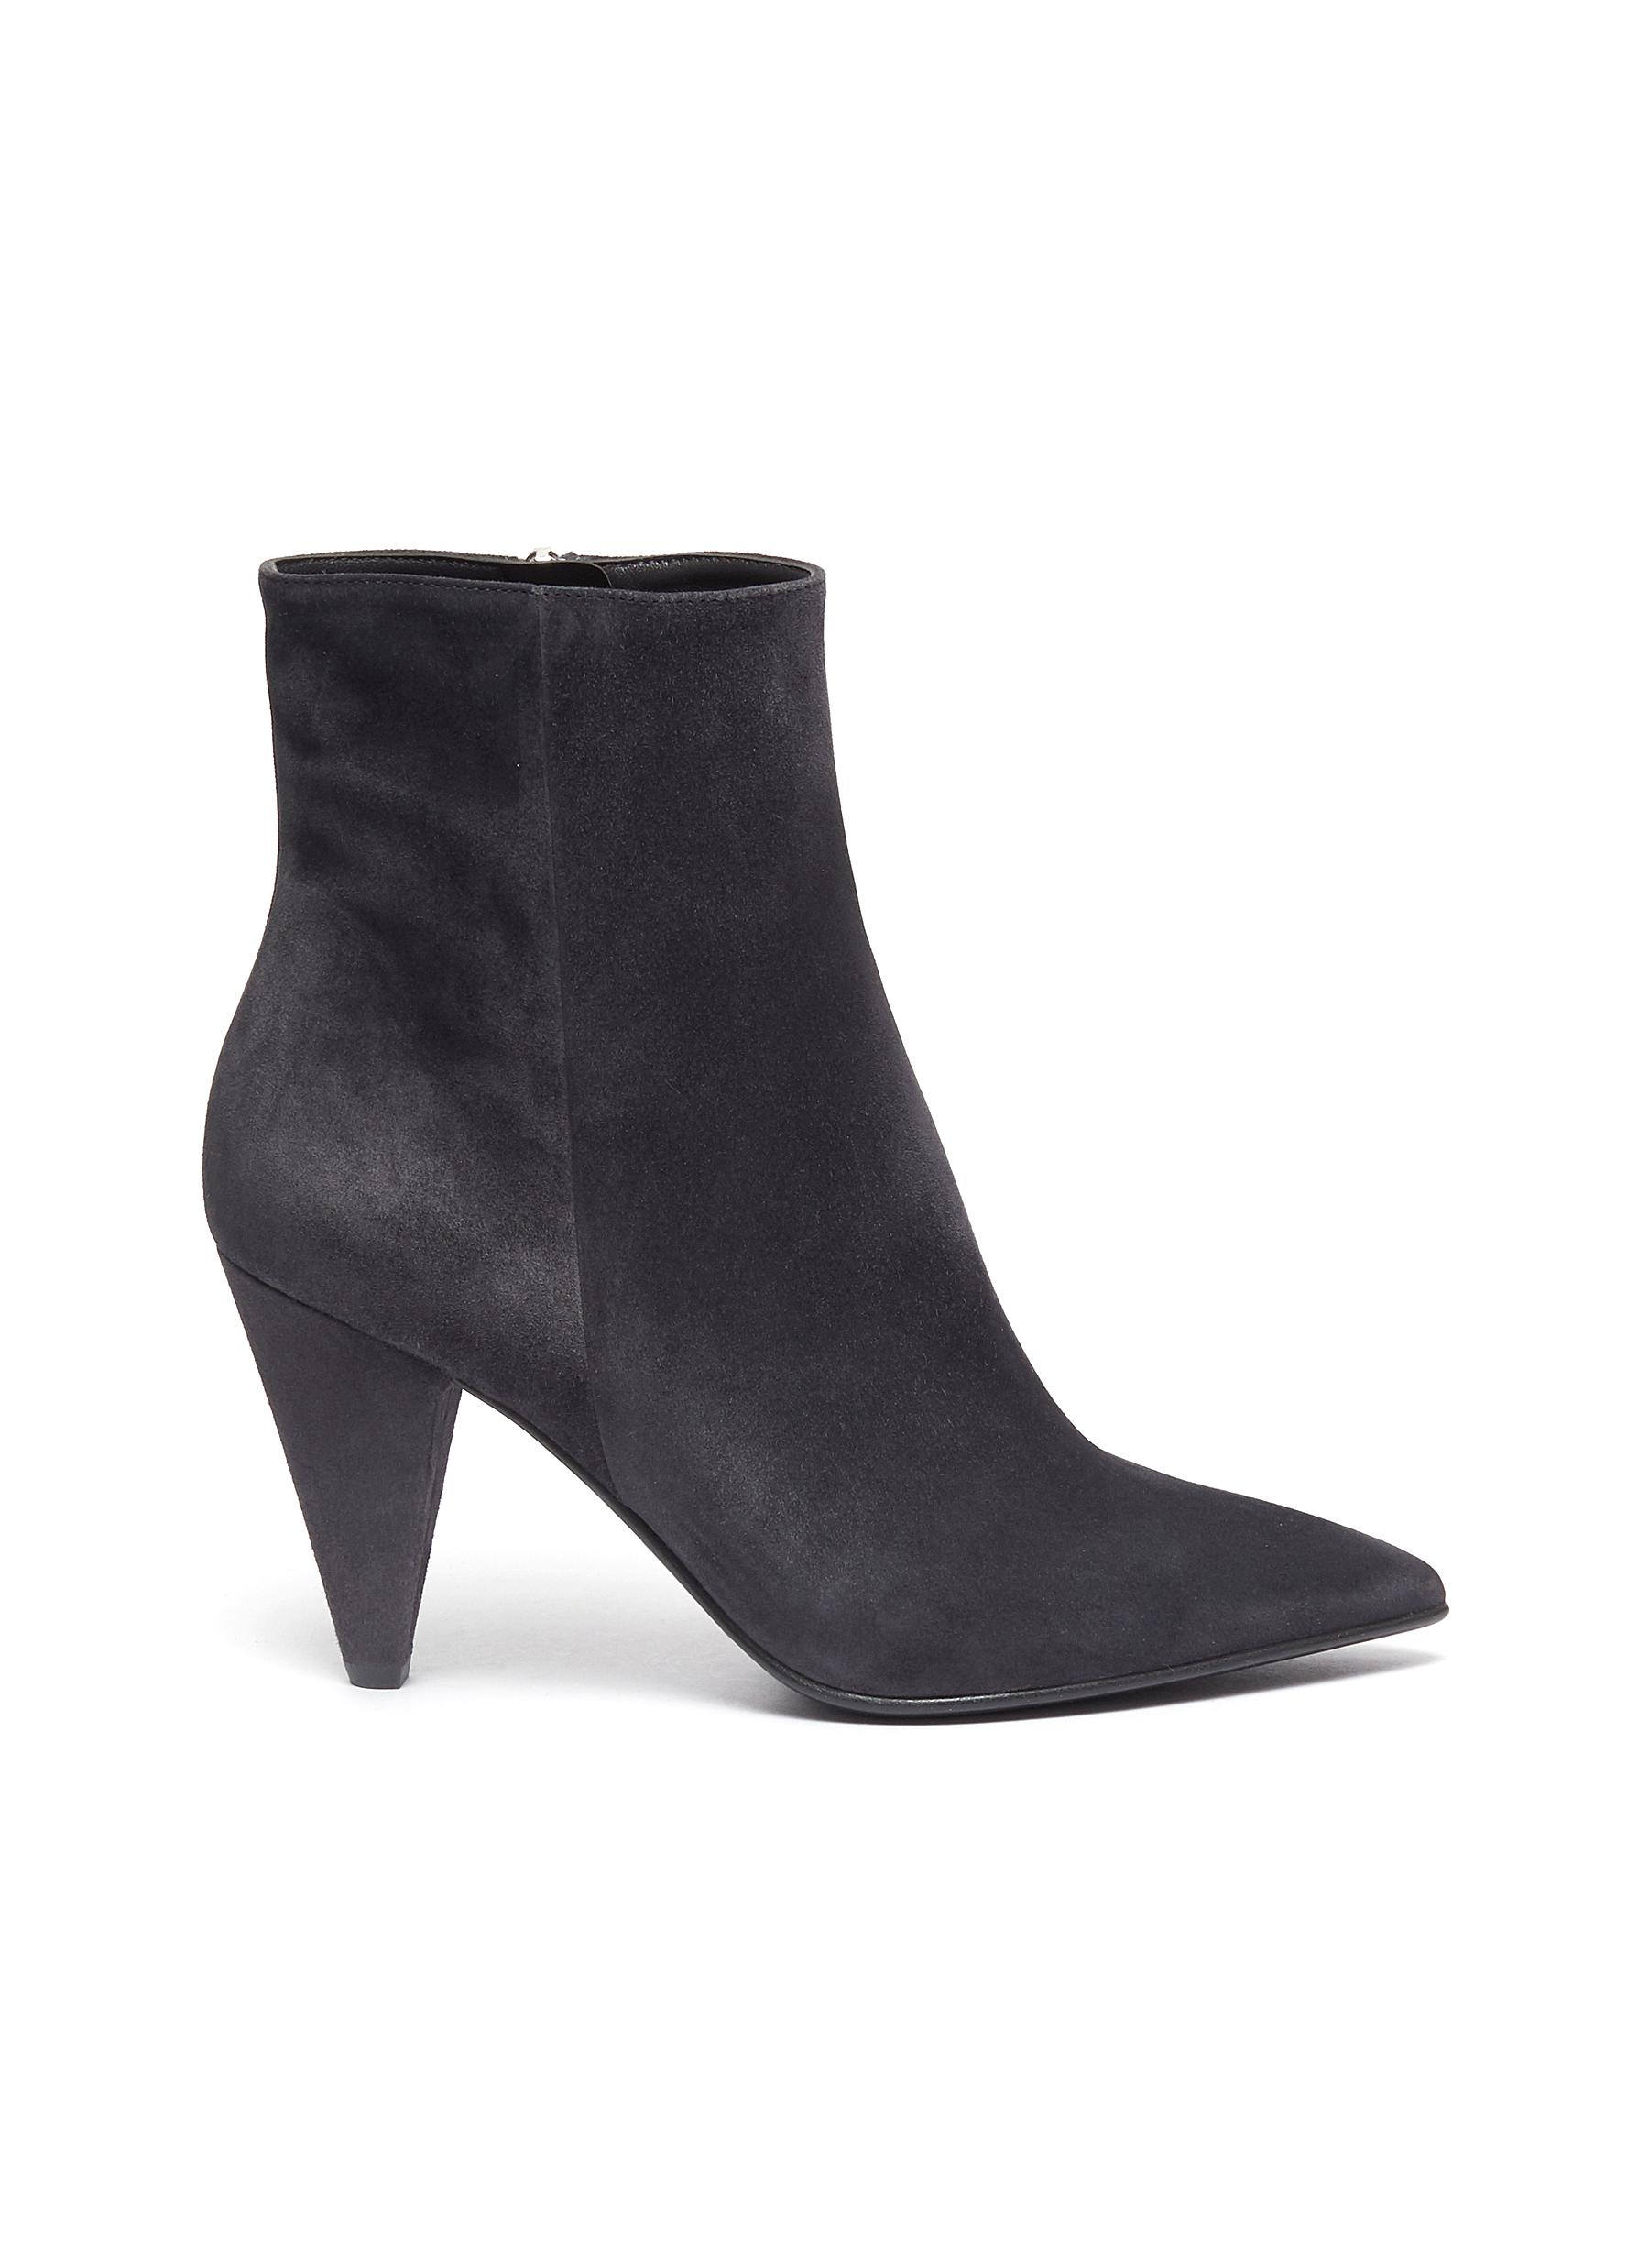 Stivale panelled suede ankle boots by Gianvito Rossi